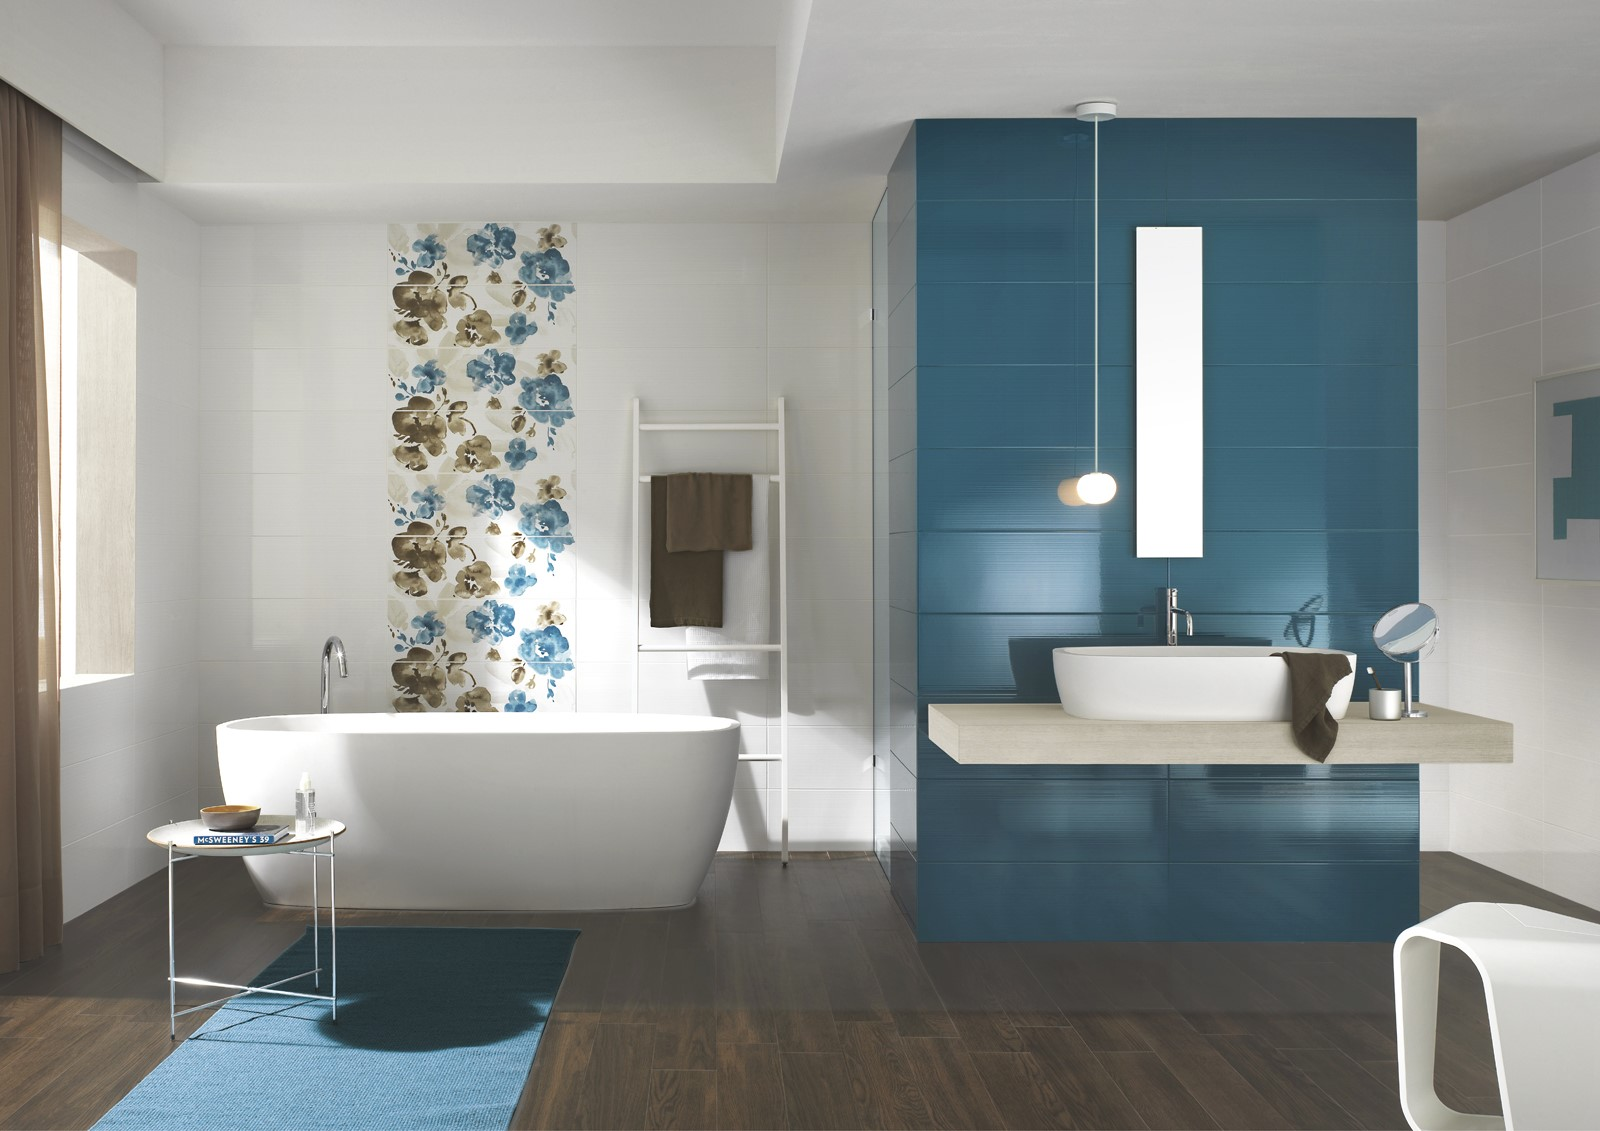 Bathroom concept d tile warehouse for Faience salle de bain bleu